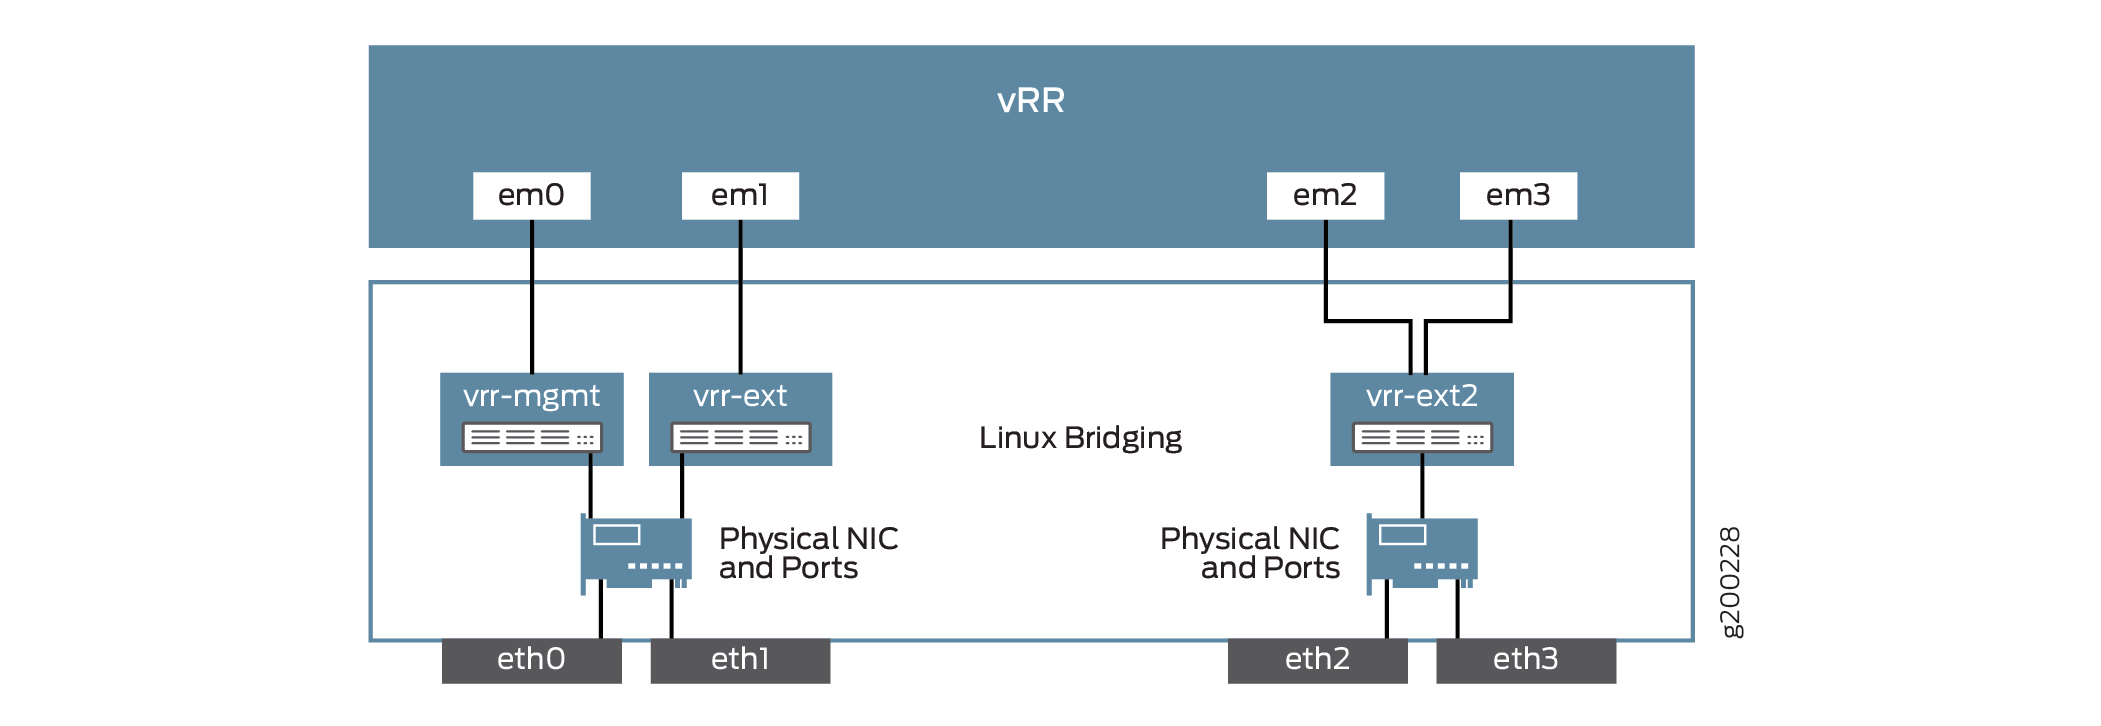 Installing the Virtual Route Reflector Image On KVM